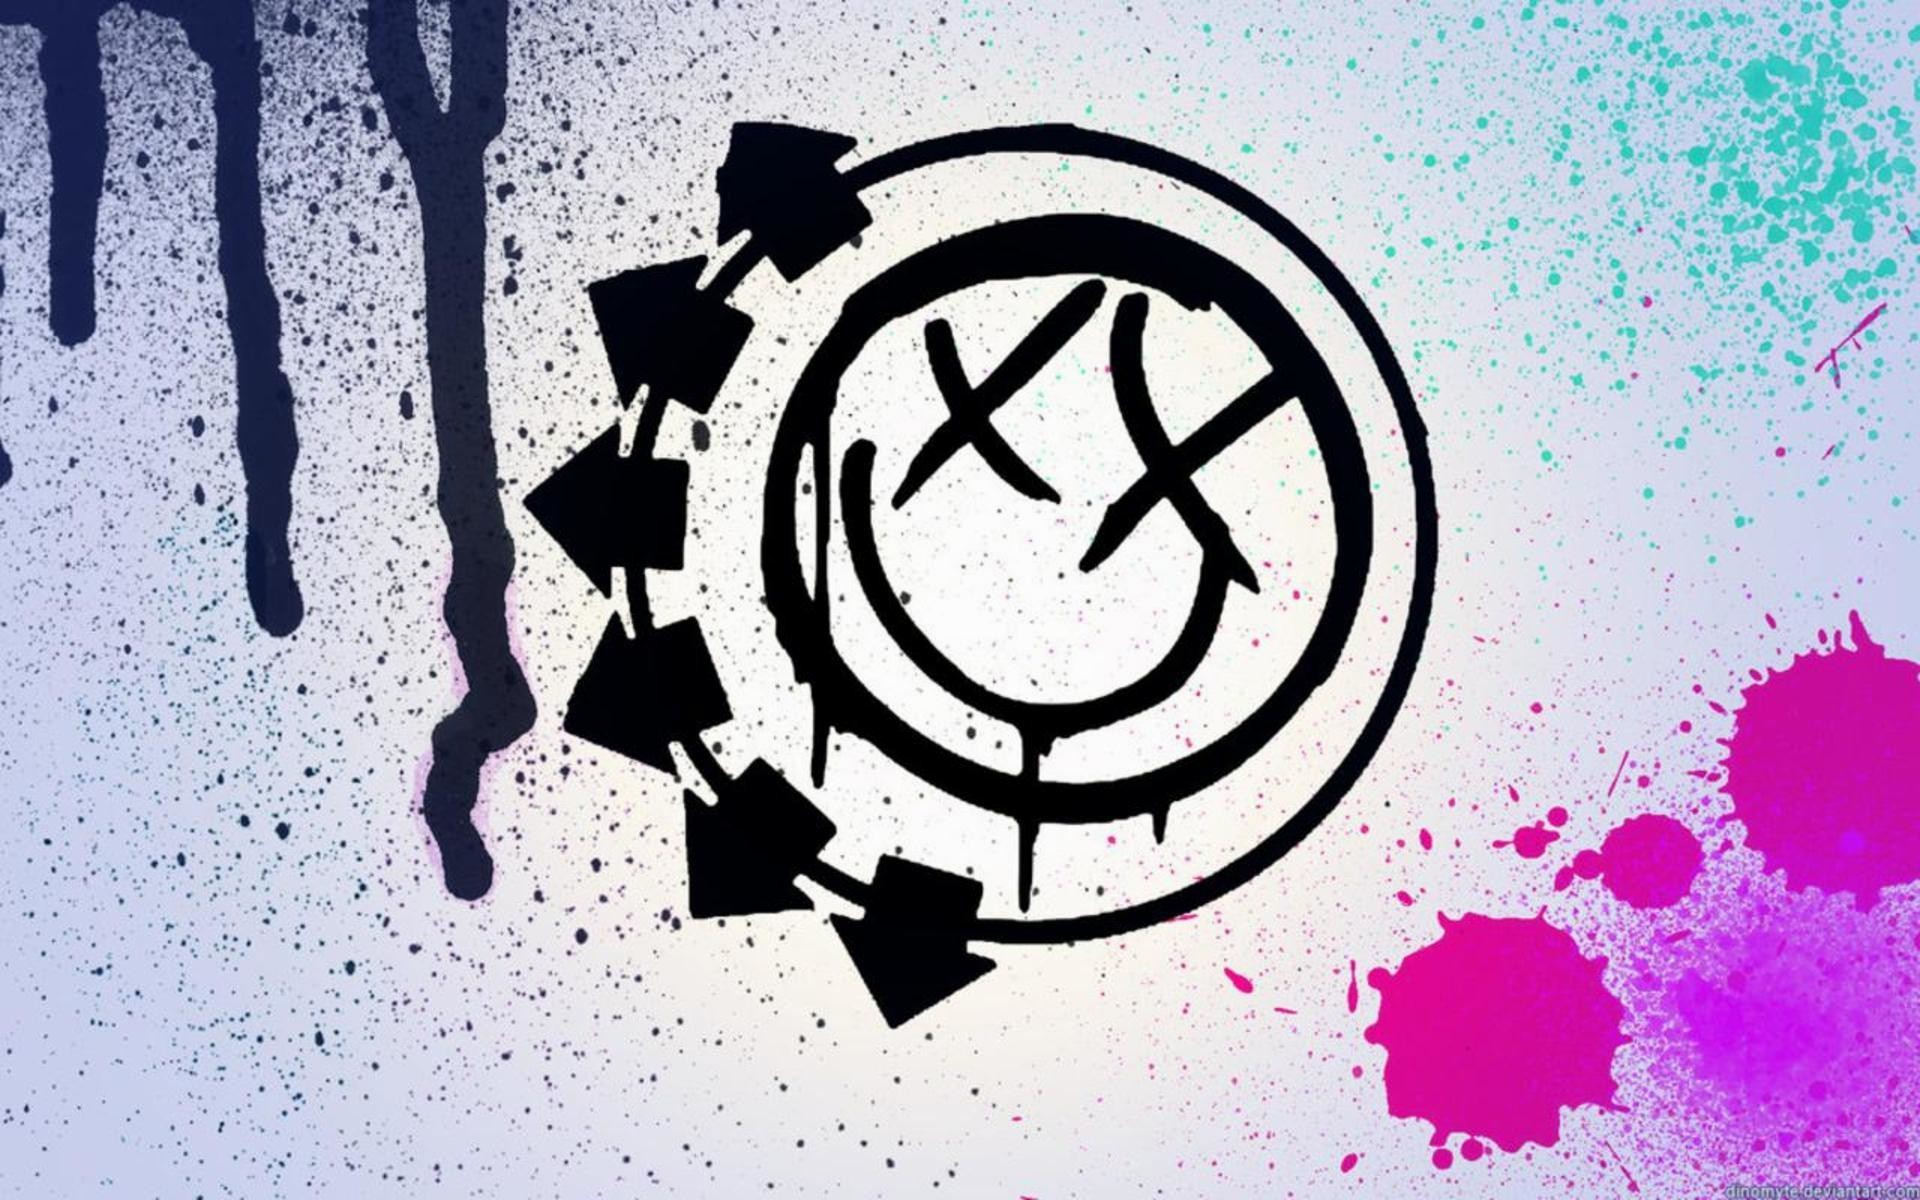 1920x1200 wallpaper.wiki-Blink-182-Desktop-Backgrounds-PIC-WPE005528